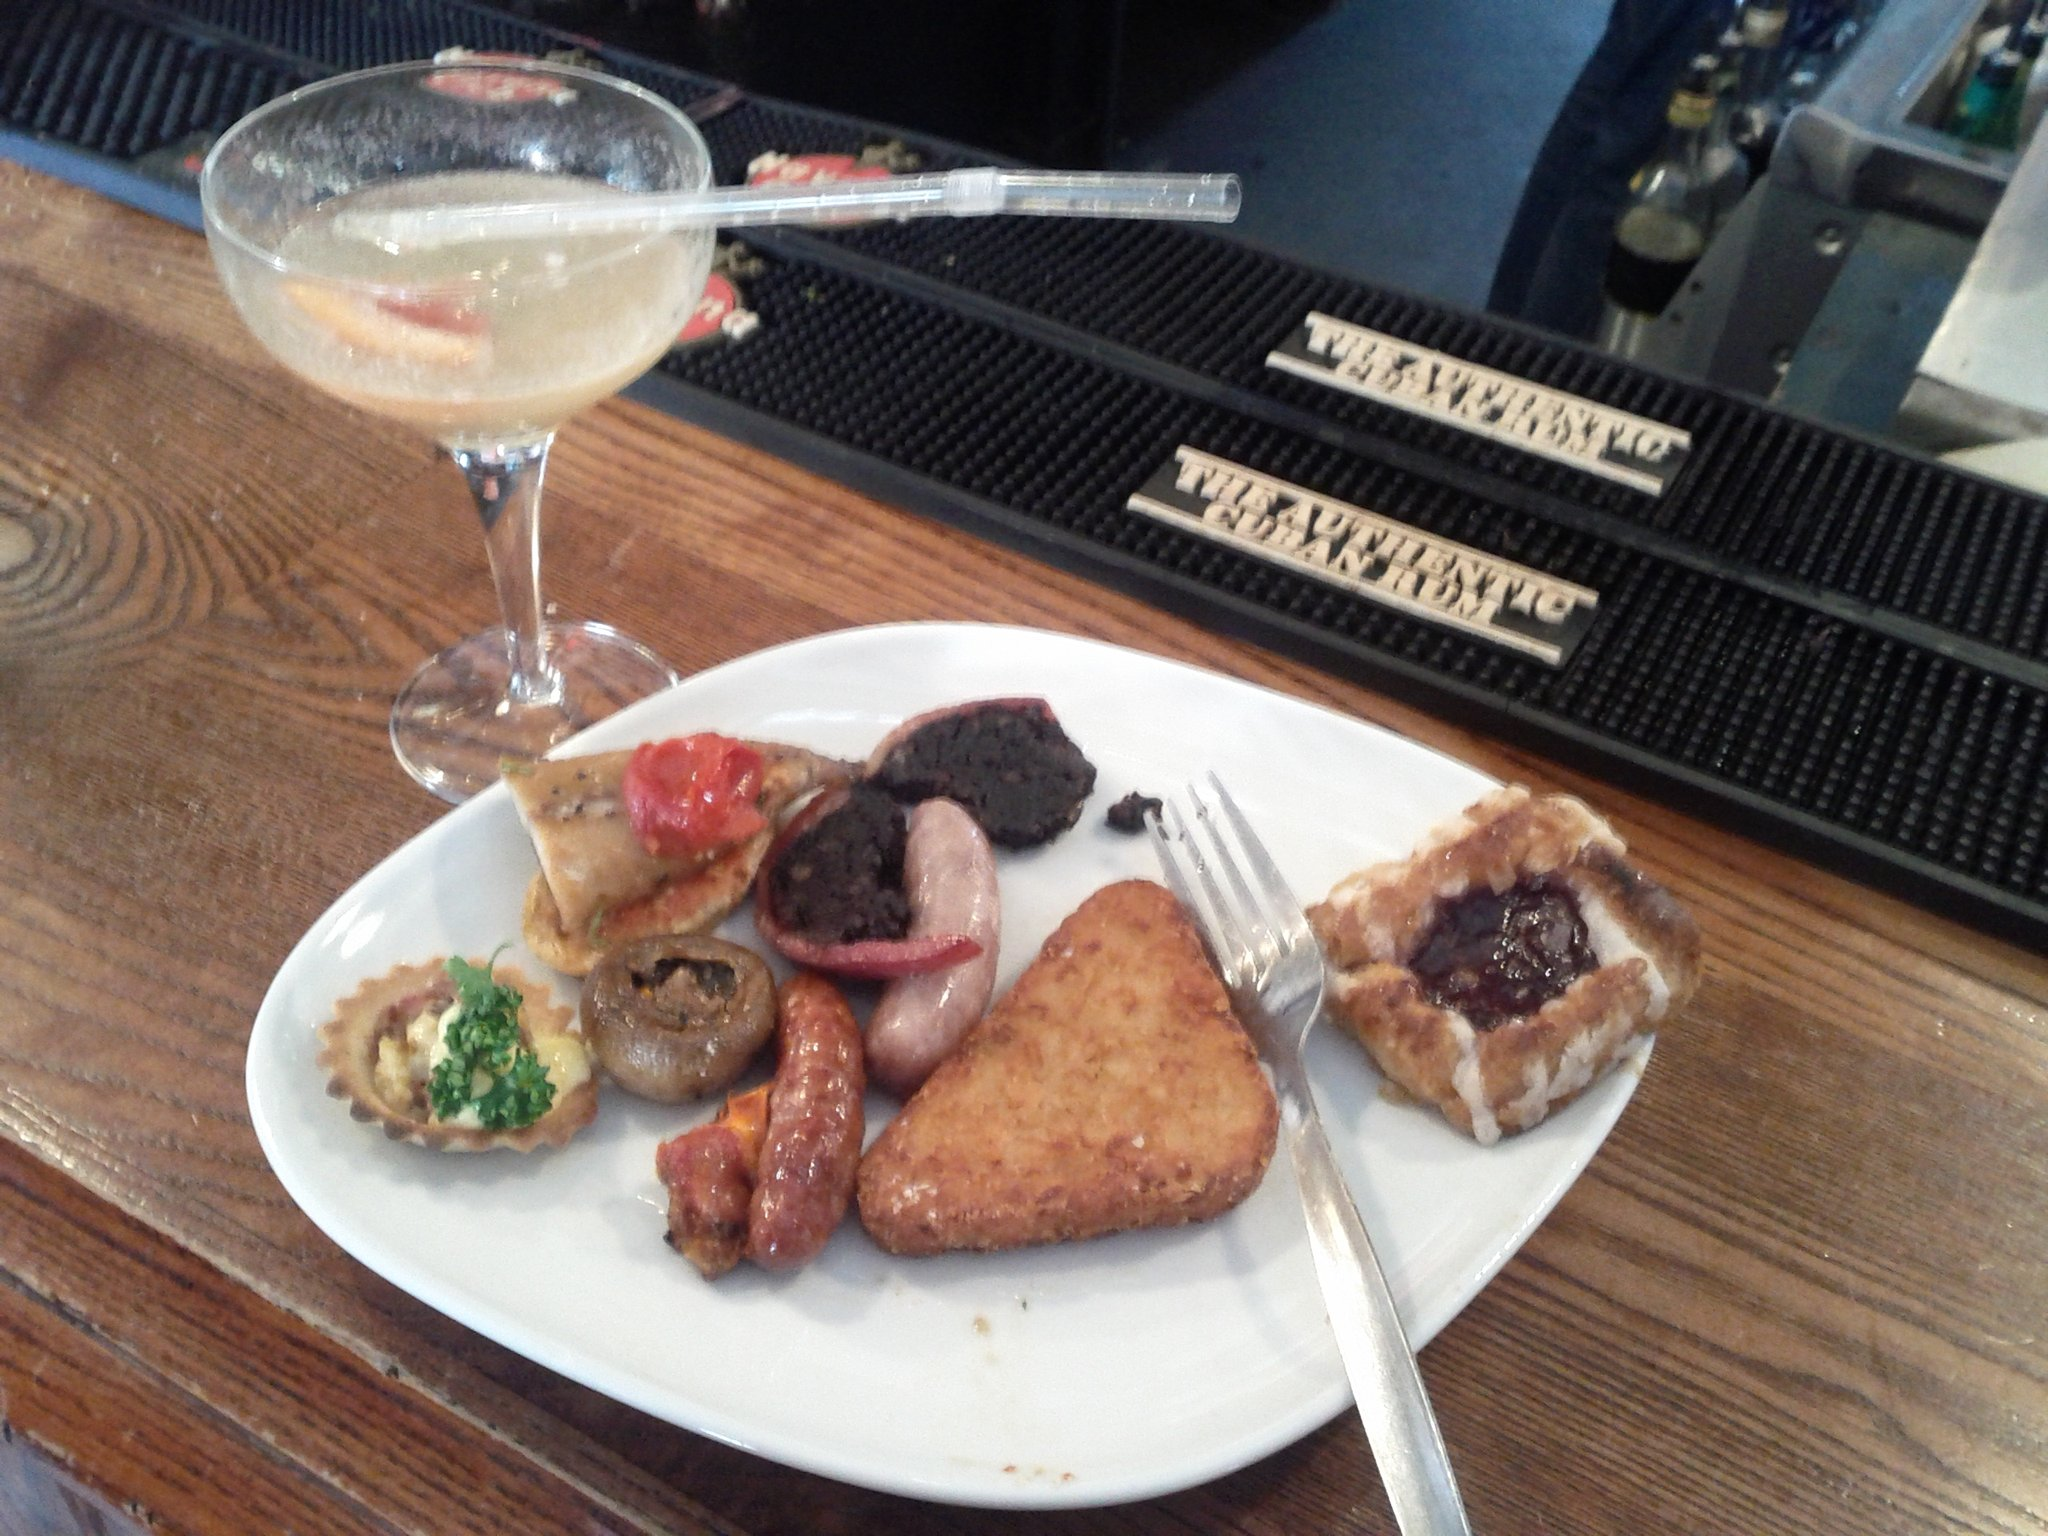 Free breakfast & grapefruit Bellini - THANK YOU NOKIA! Great start to Saturday's #tramlines http://t.co/045LtVMG